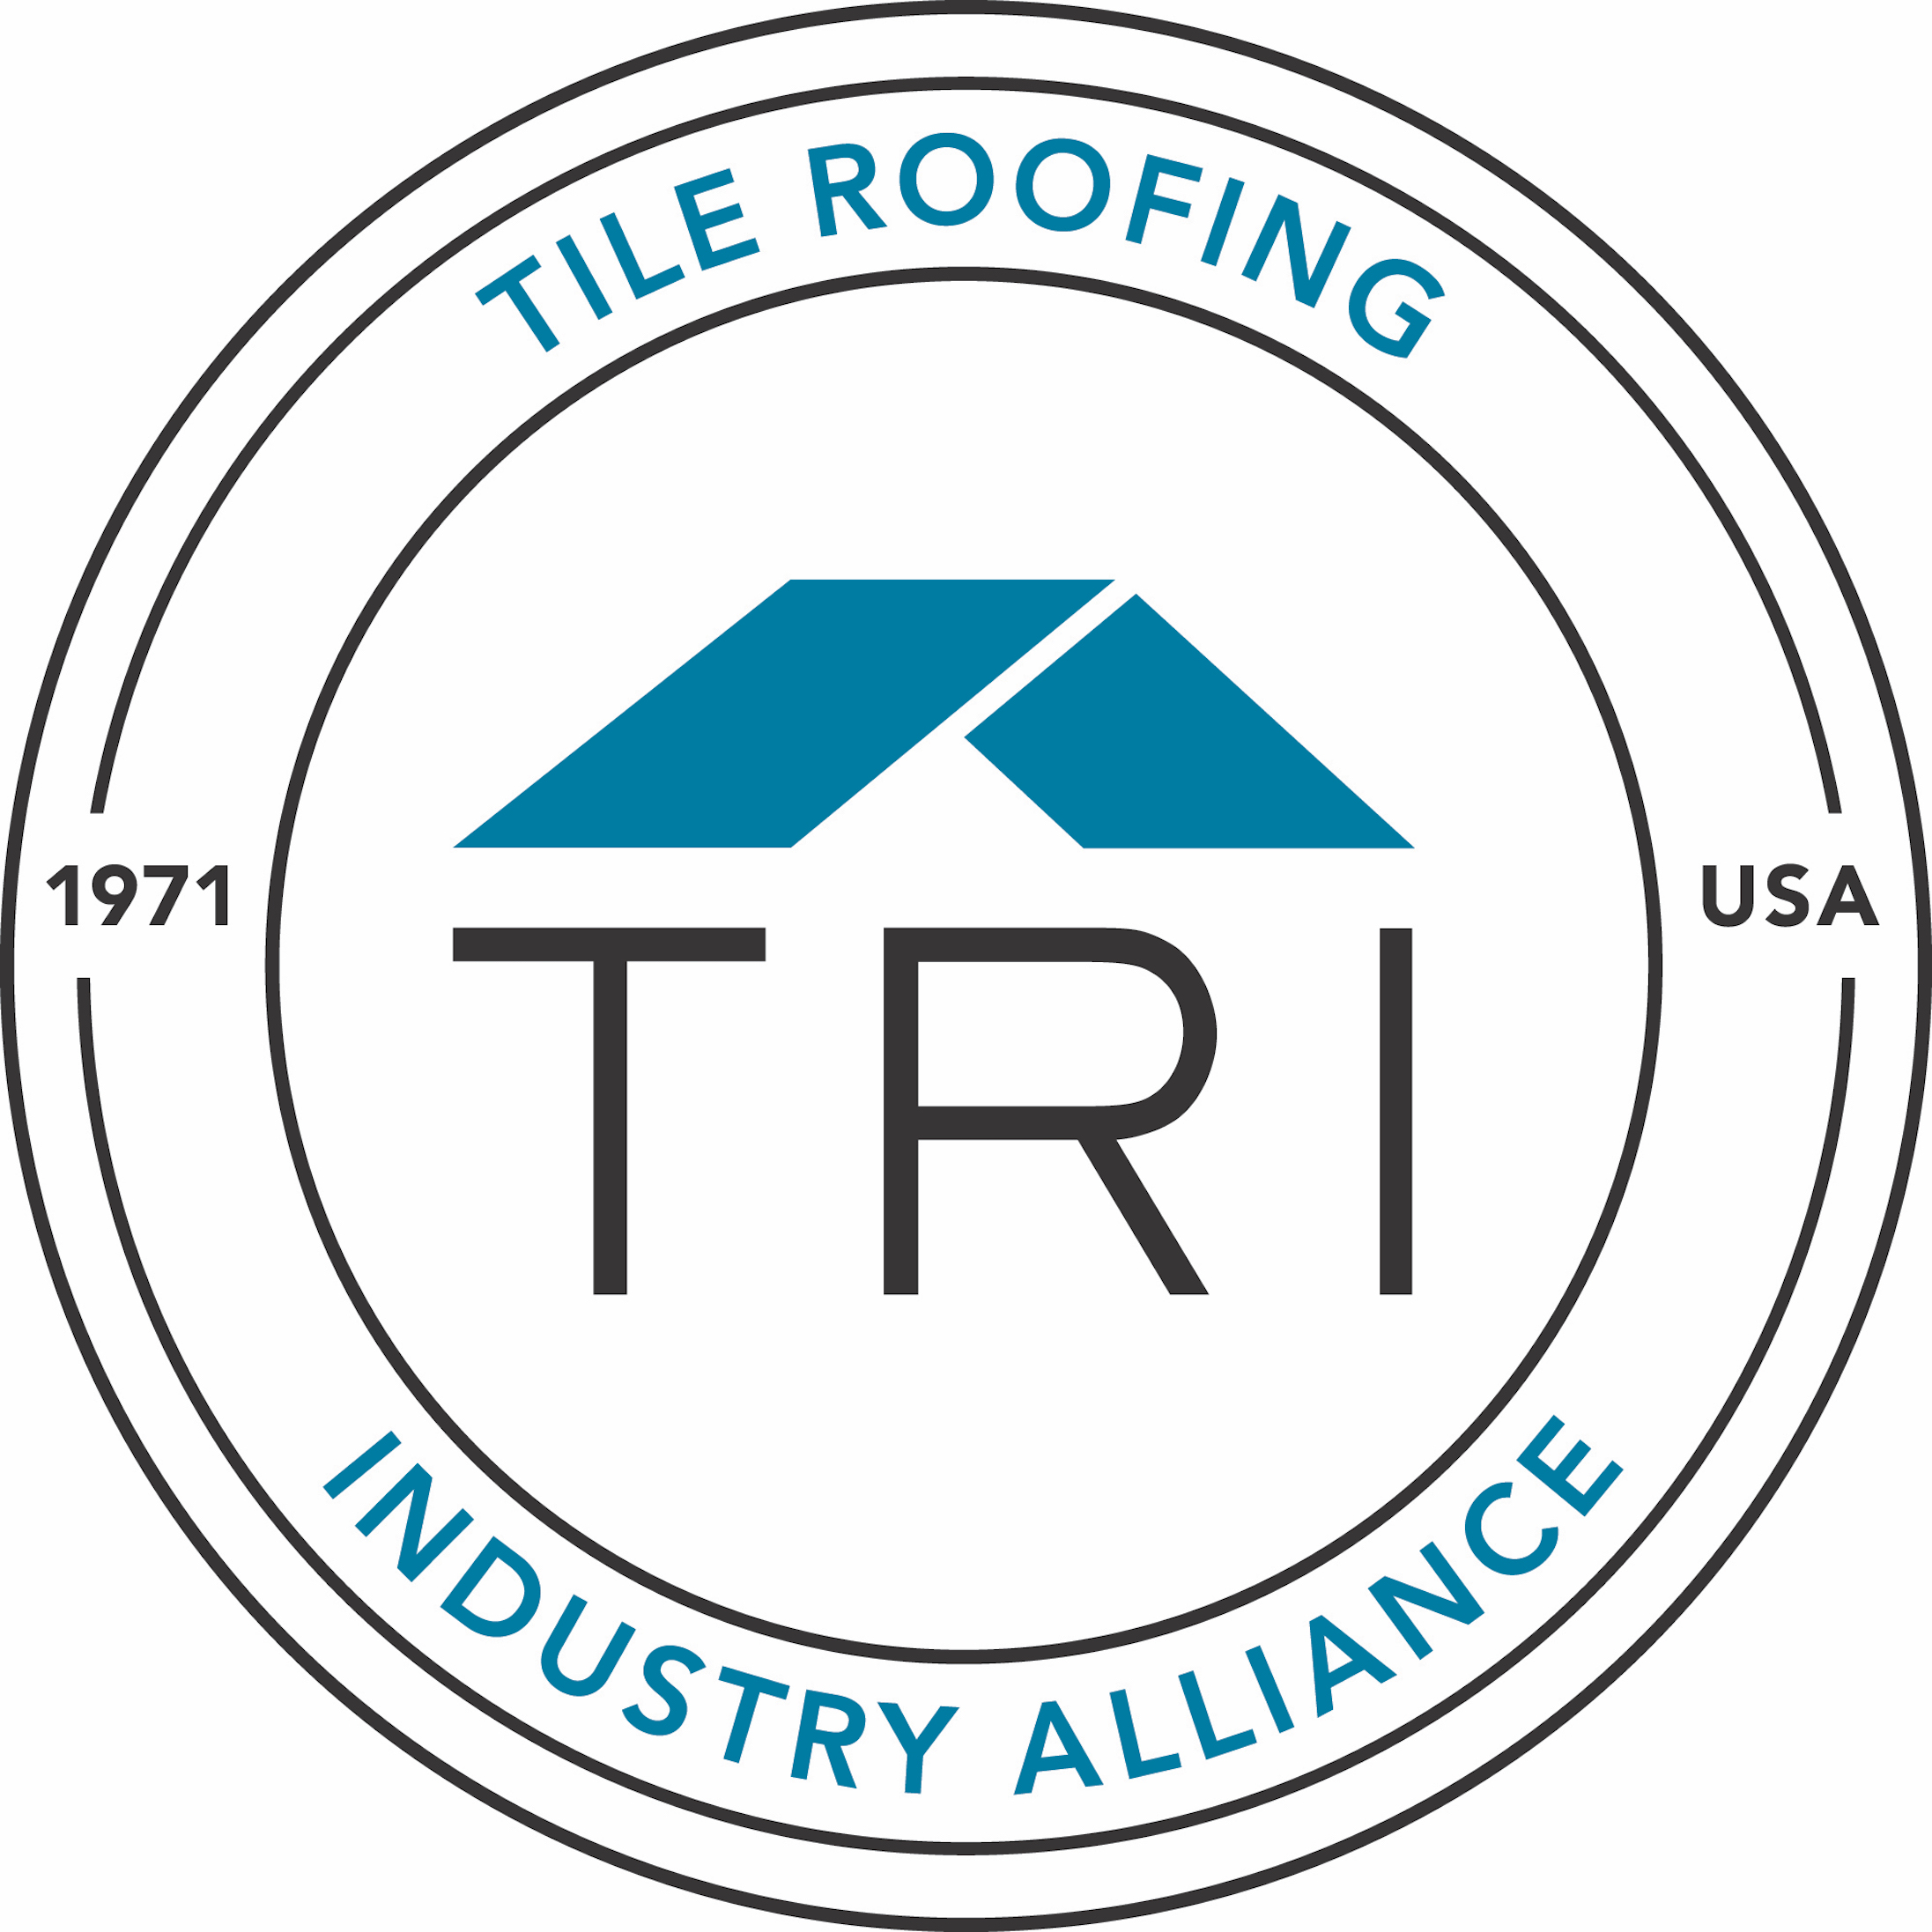 Tile Roofing Institute Announces New Name And Brand